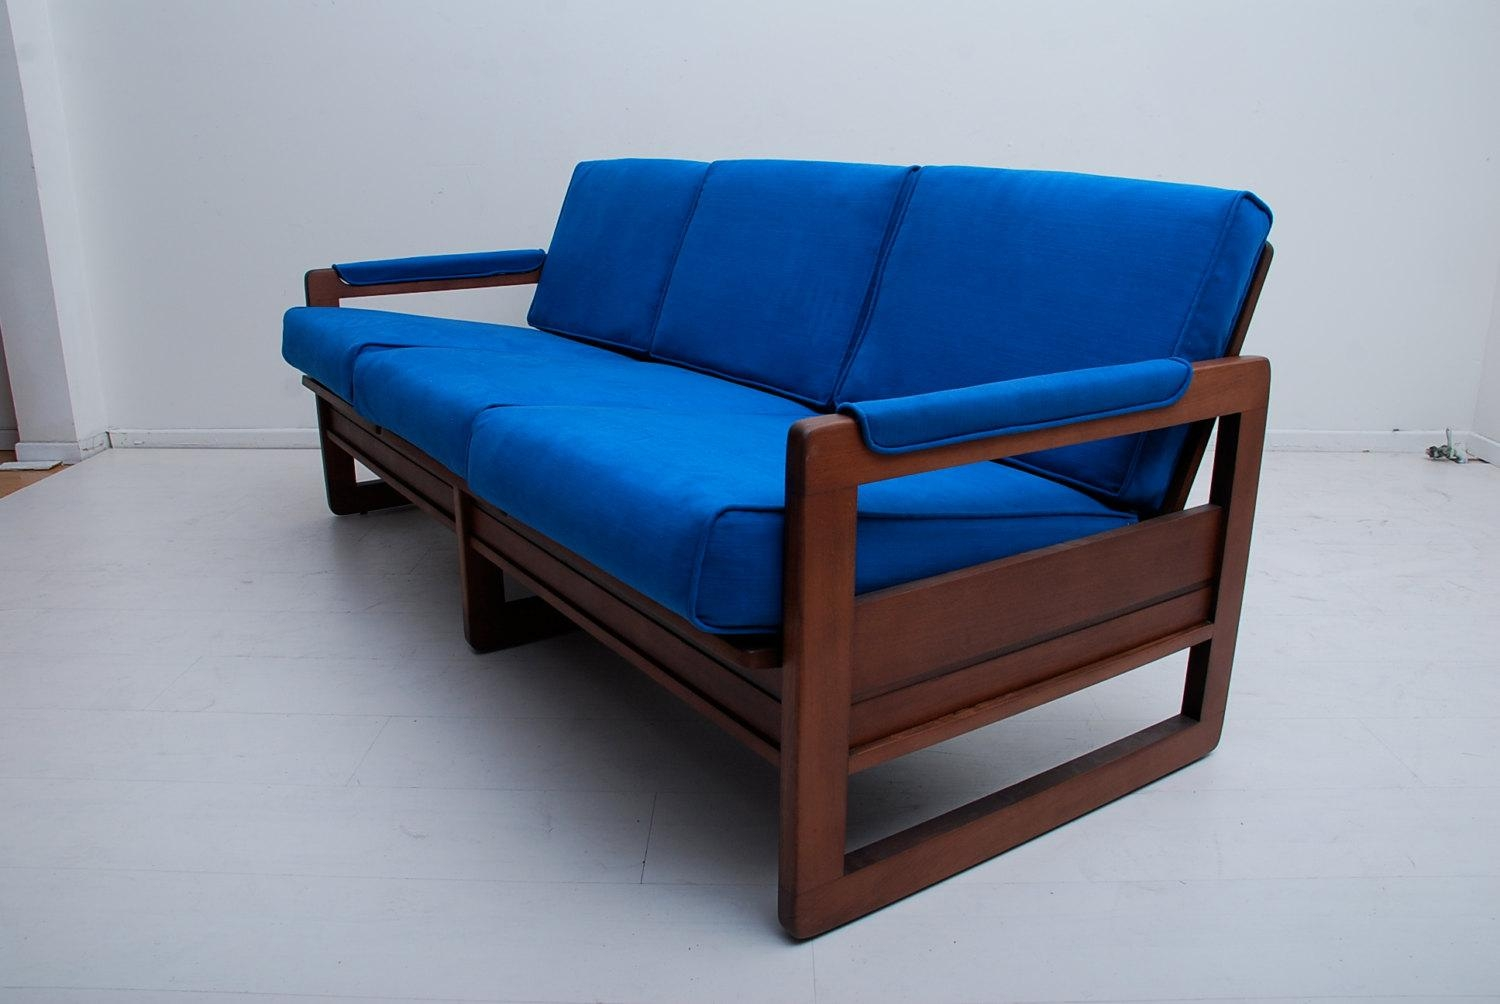 24 Simple Wooden Sofa To Use In Your Home | Keribrownhomes In Blue Sofa Chairs (Image 1 of 20)